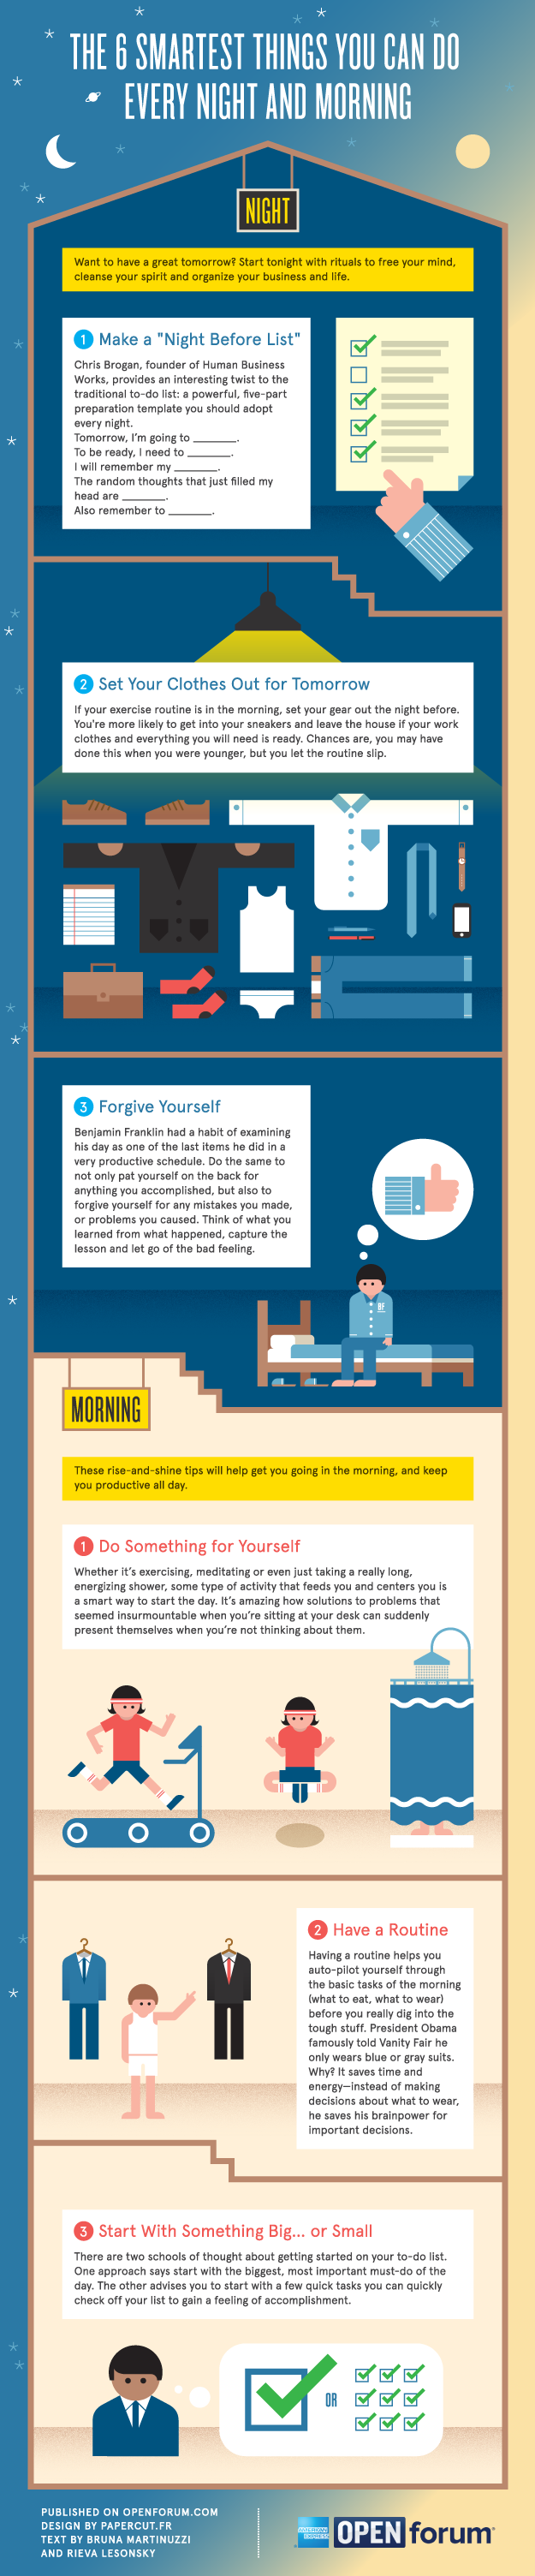 the-6-smartest-things-you-can-do-every-night-and-morning_526152026fb40